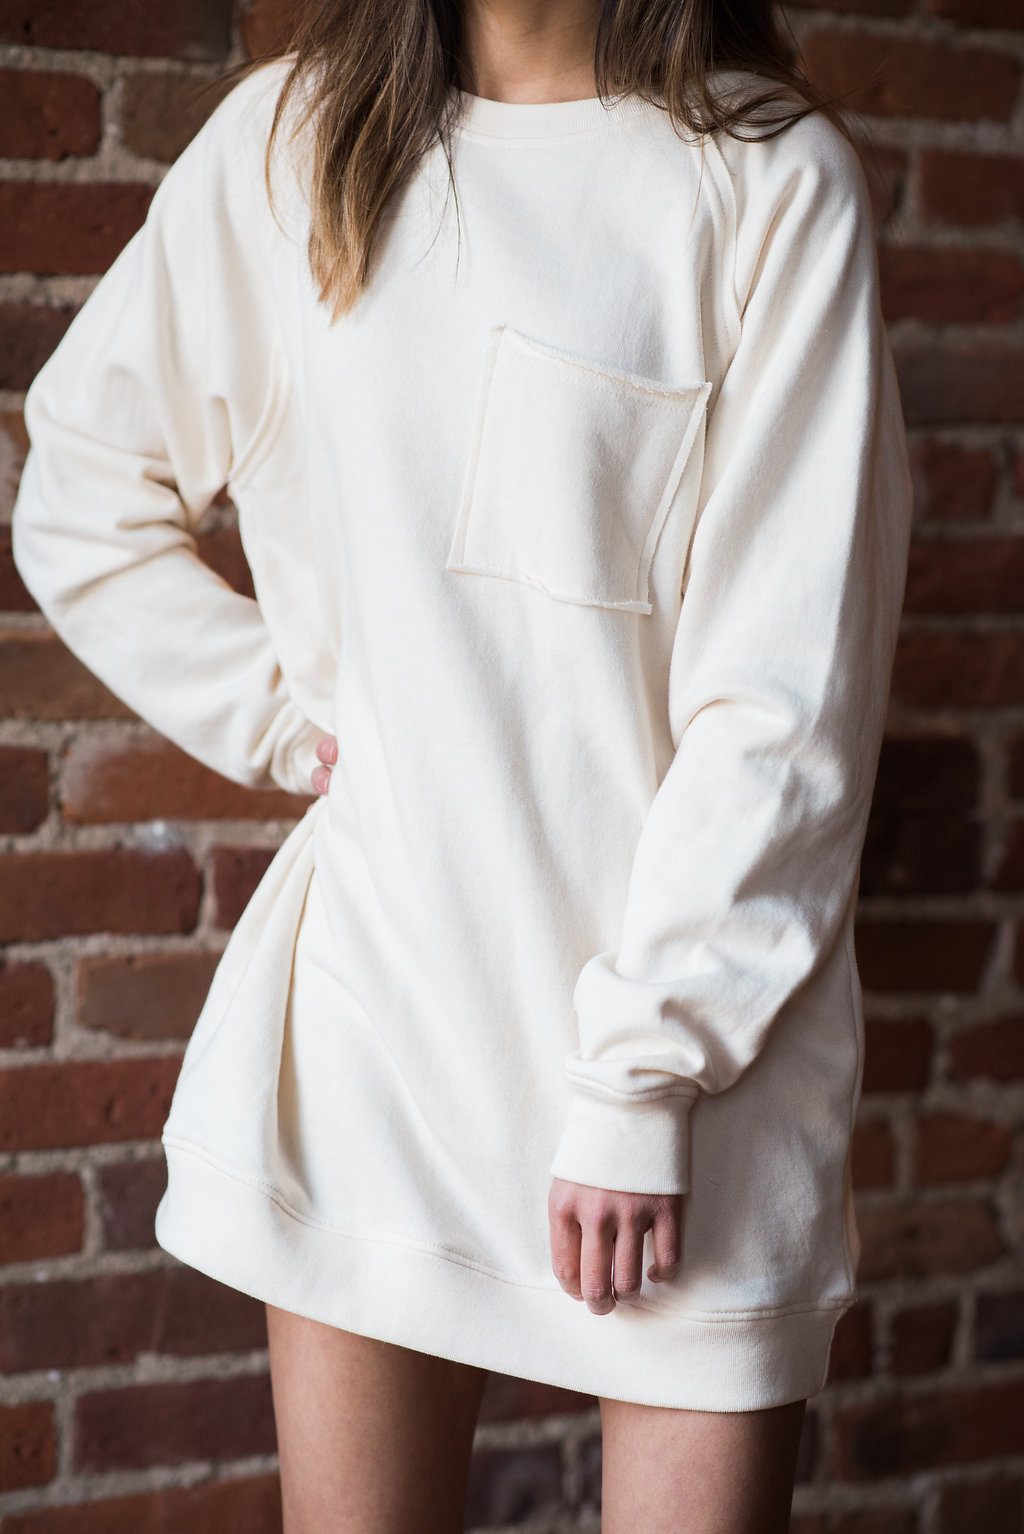 Athleisure love: sweater dress